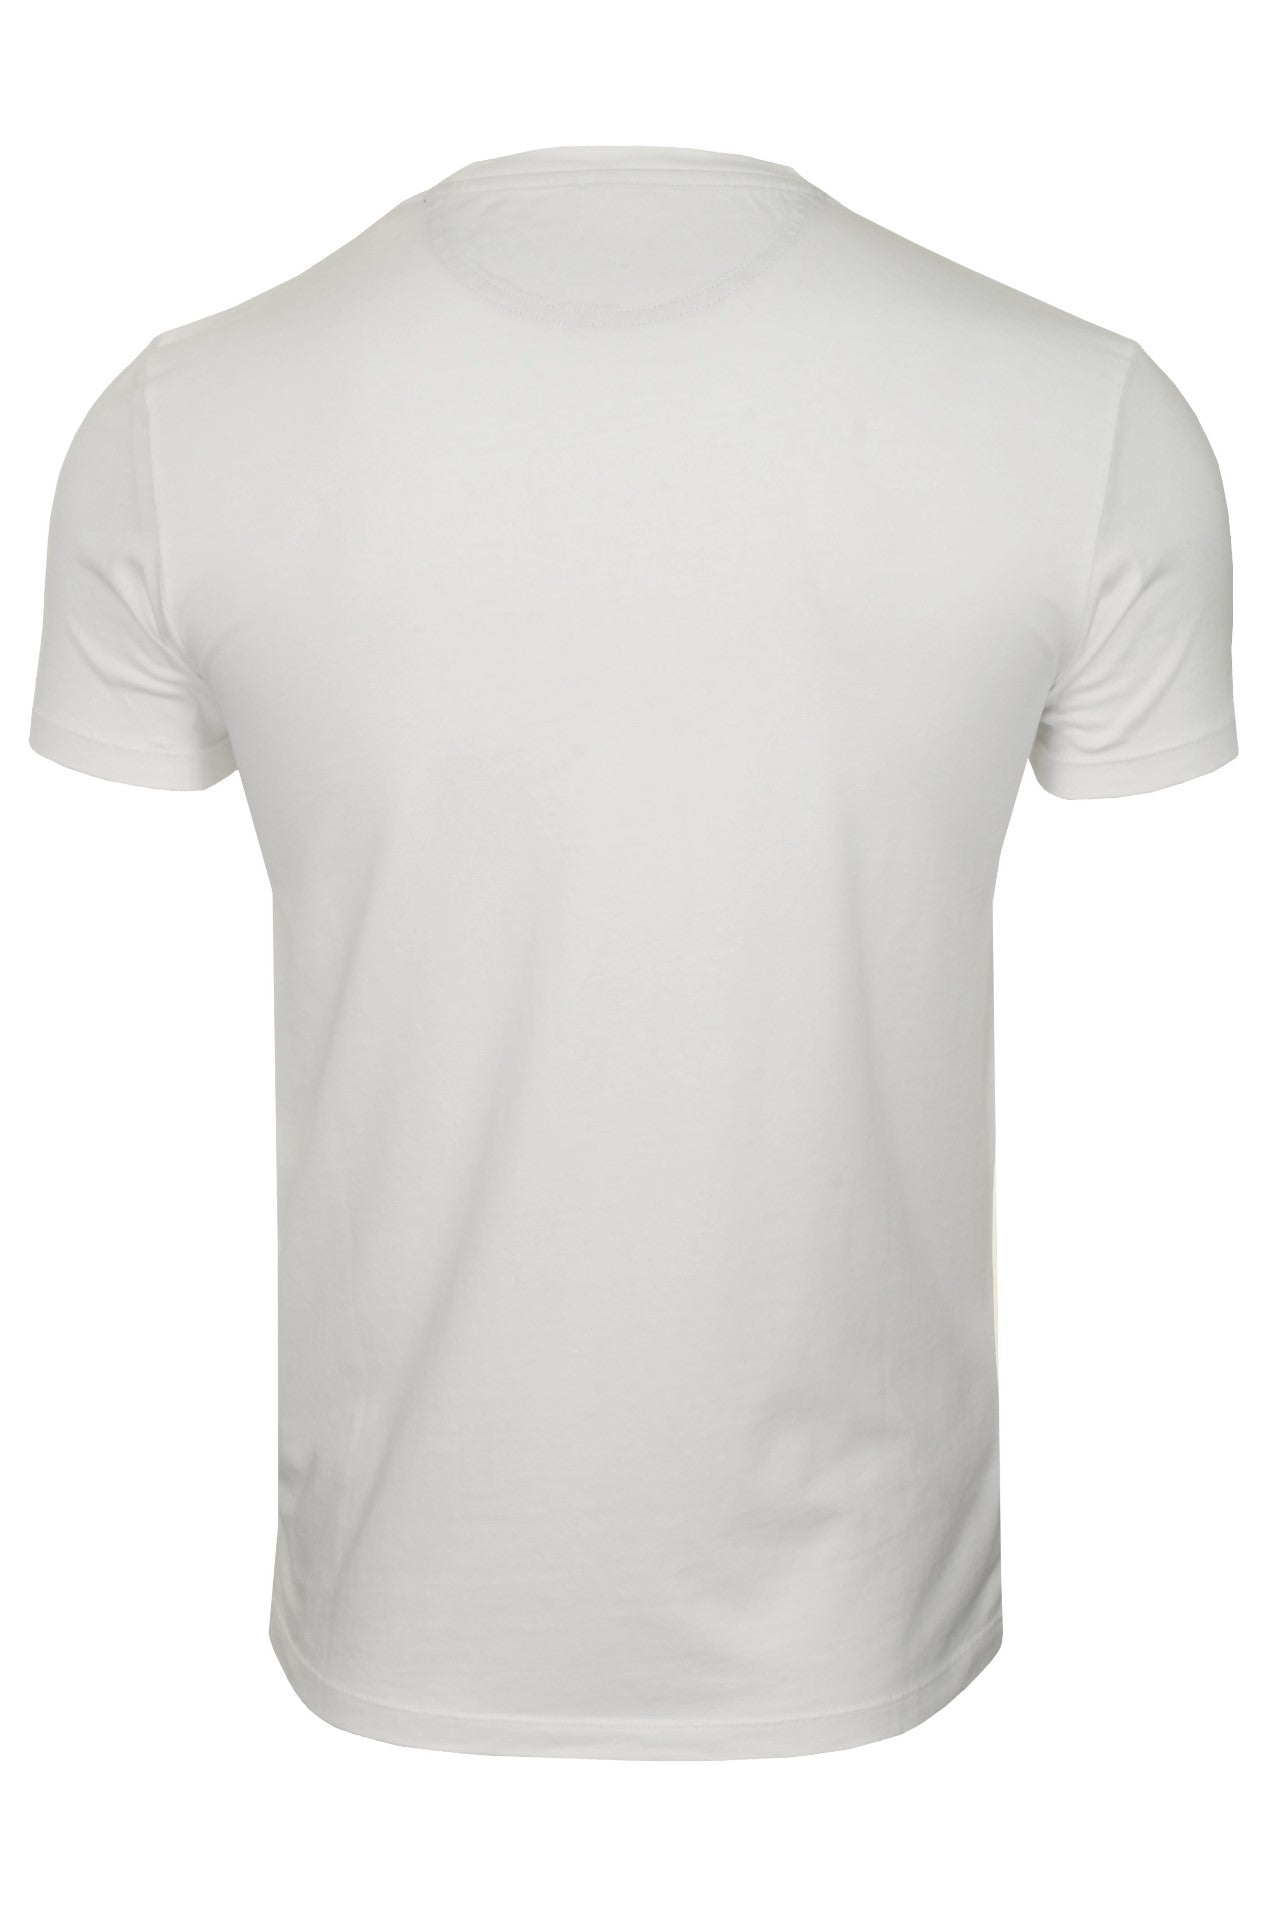 Timberland Mens Crew Neck T-Shirt 'Dunstan River Jersey Crew' - Short Sleeved_03_Tb0A2Bpr_White